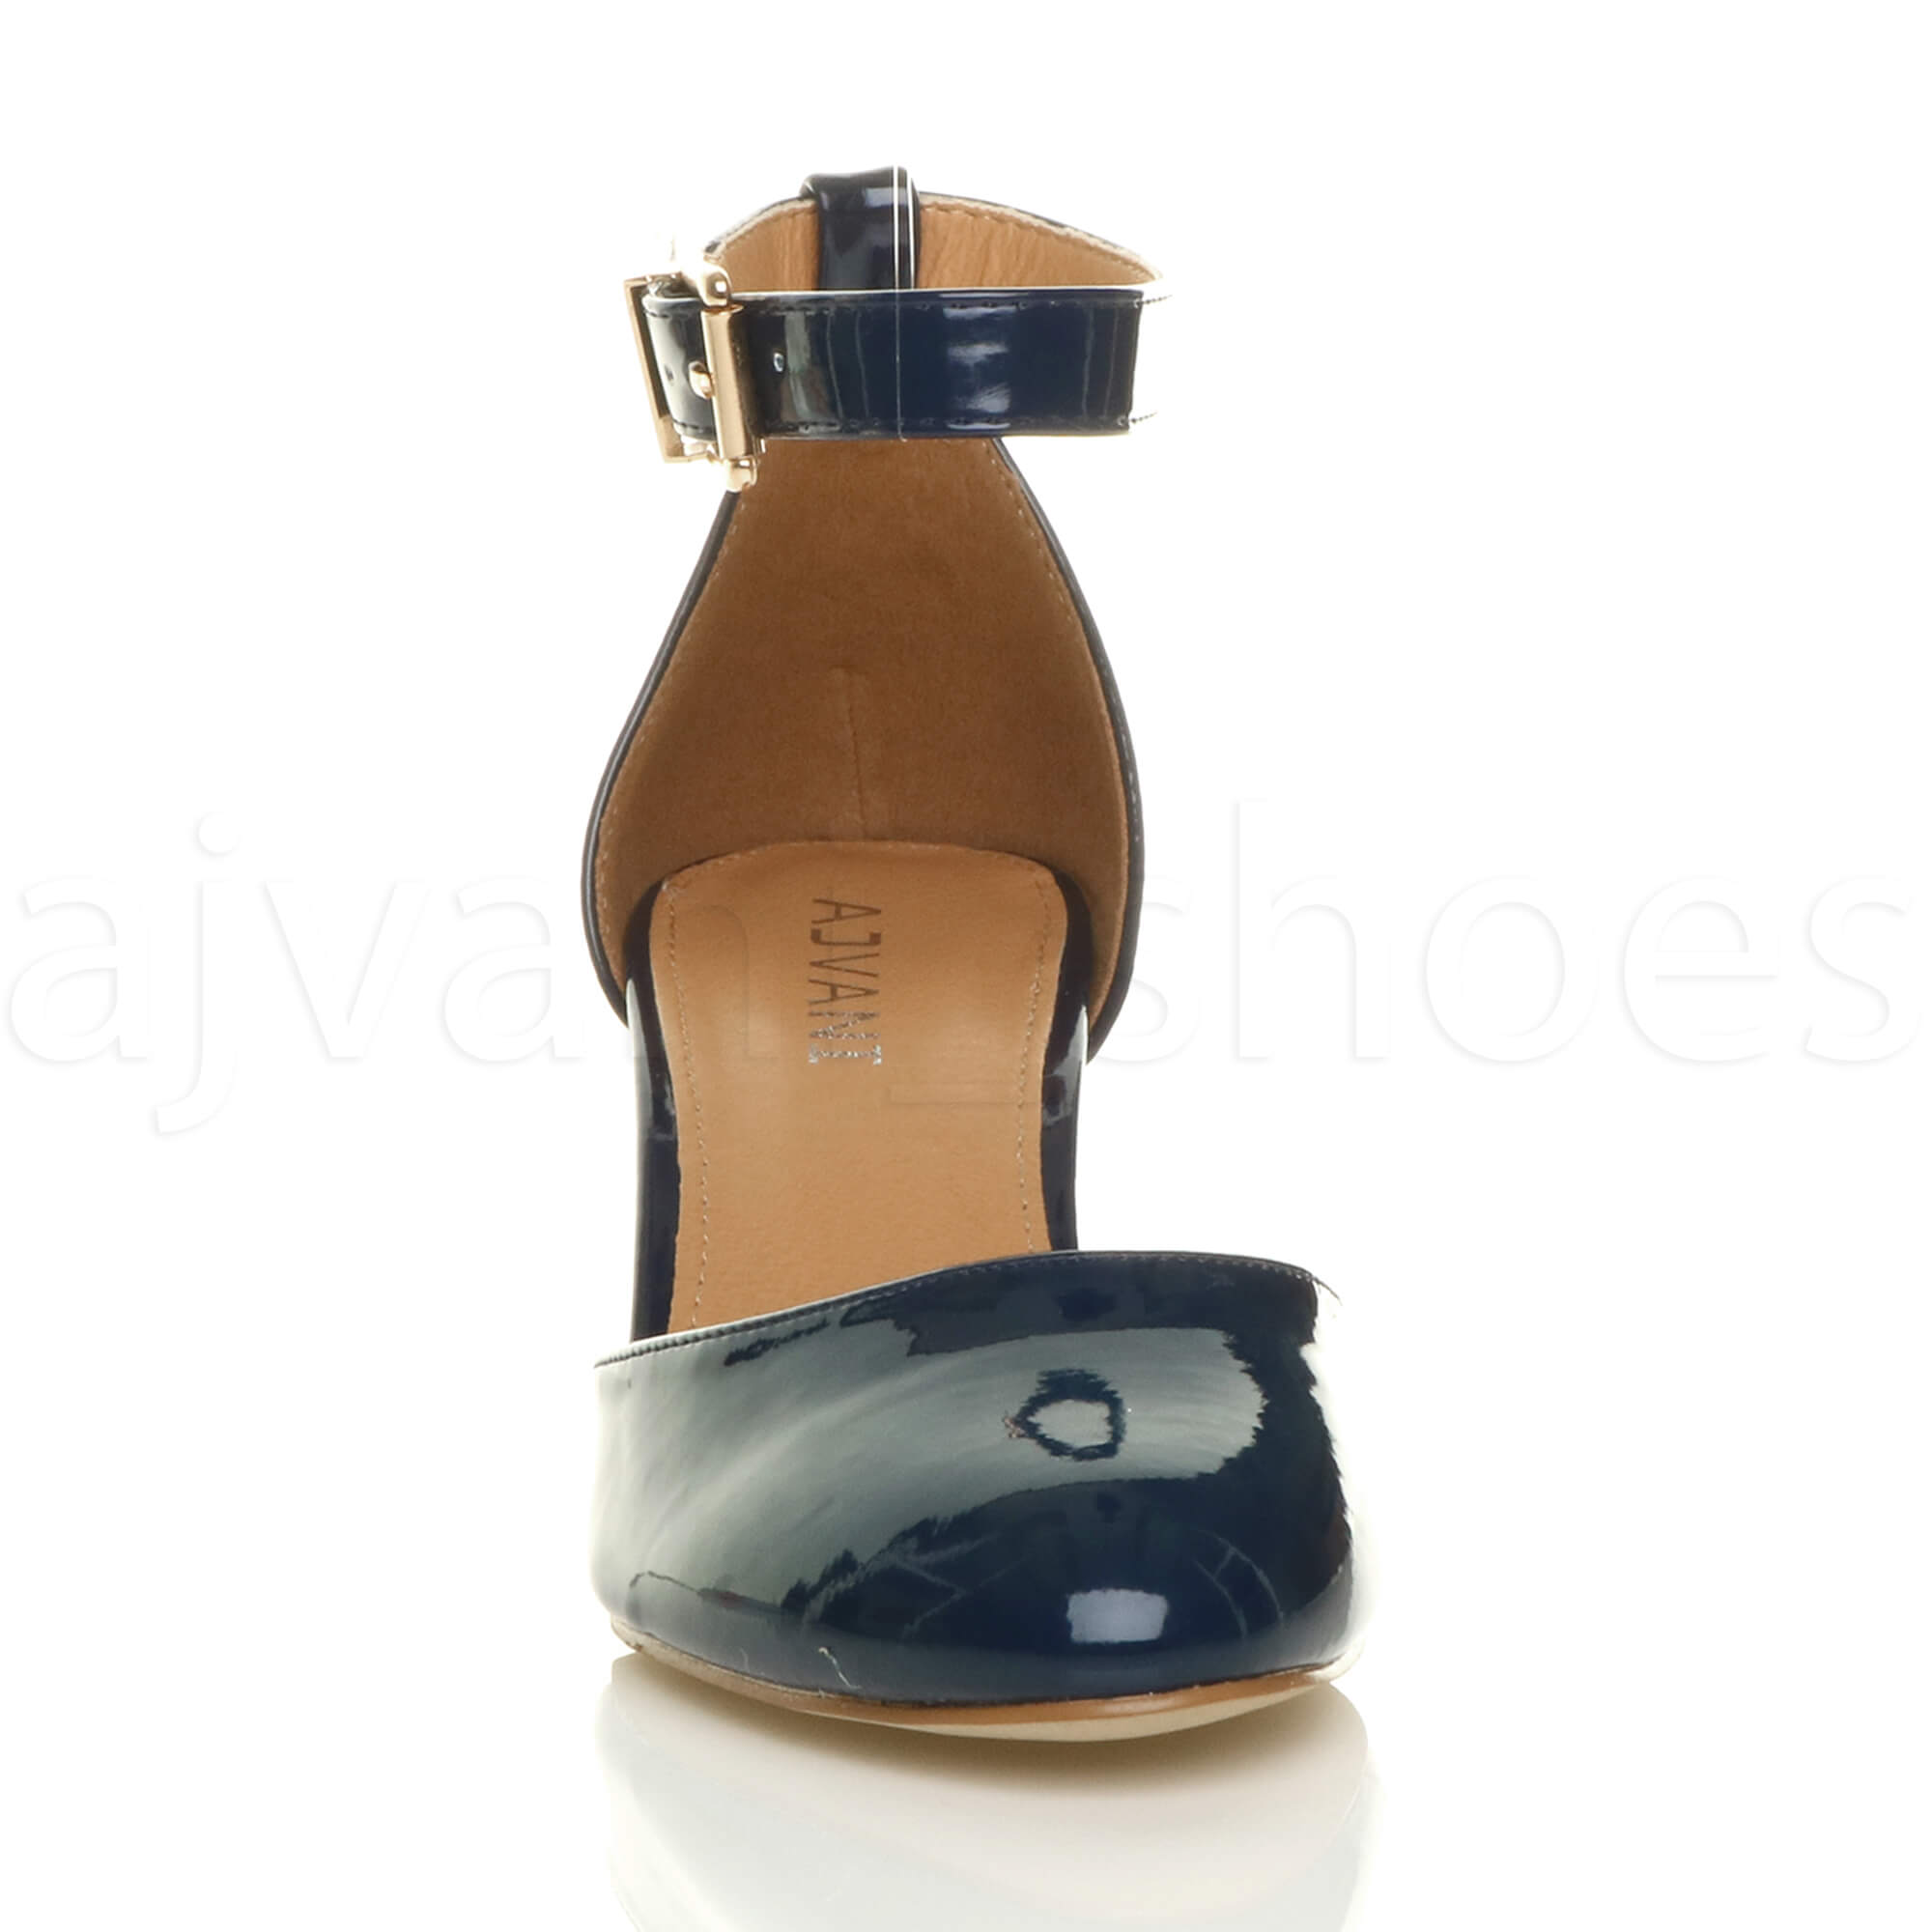 WOMENS-LADIES-LOW-MID-BLOCK-HEEL-ANKLE-STRAP-MARY-JANE-COURT-SHOES-SANDALS-SIZE thumbnail 103